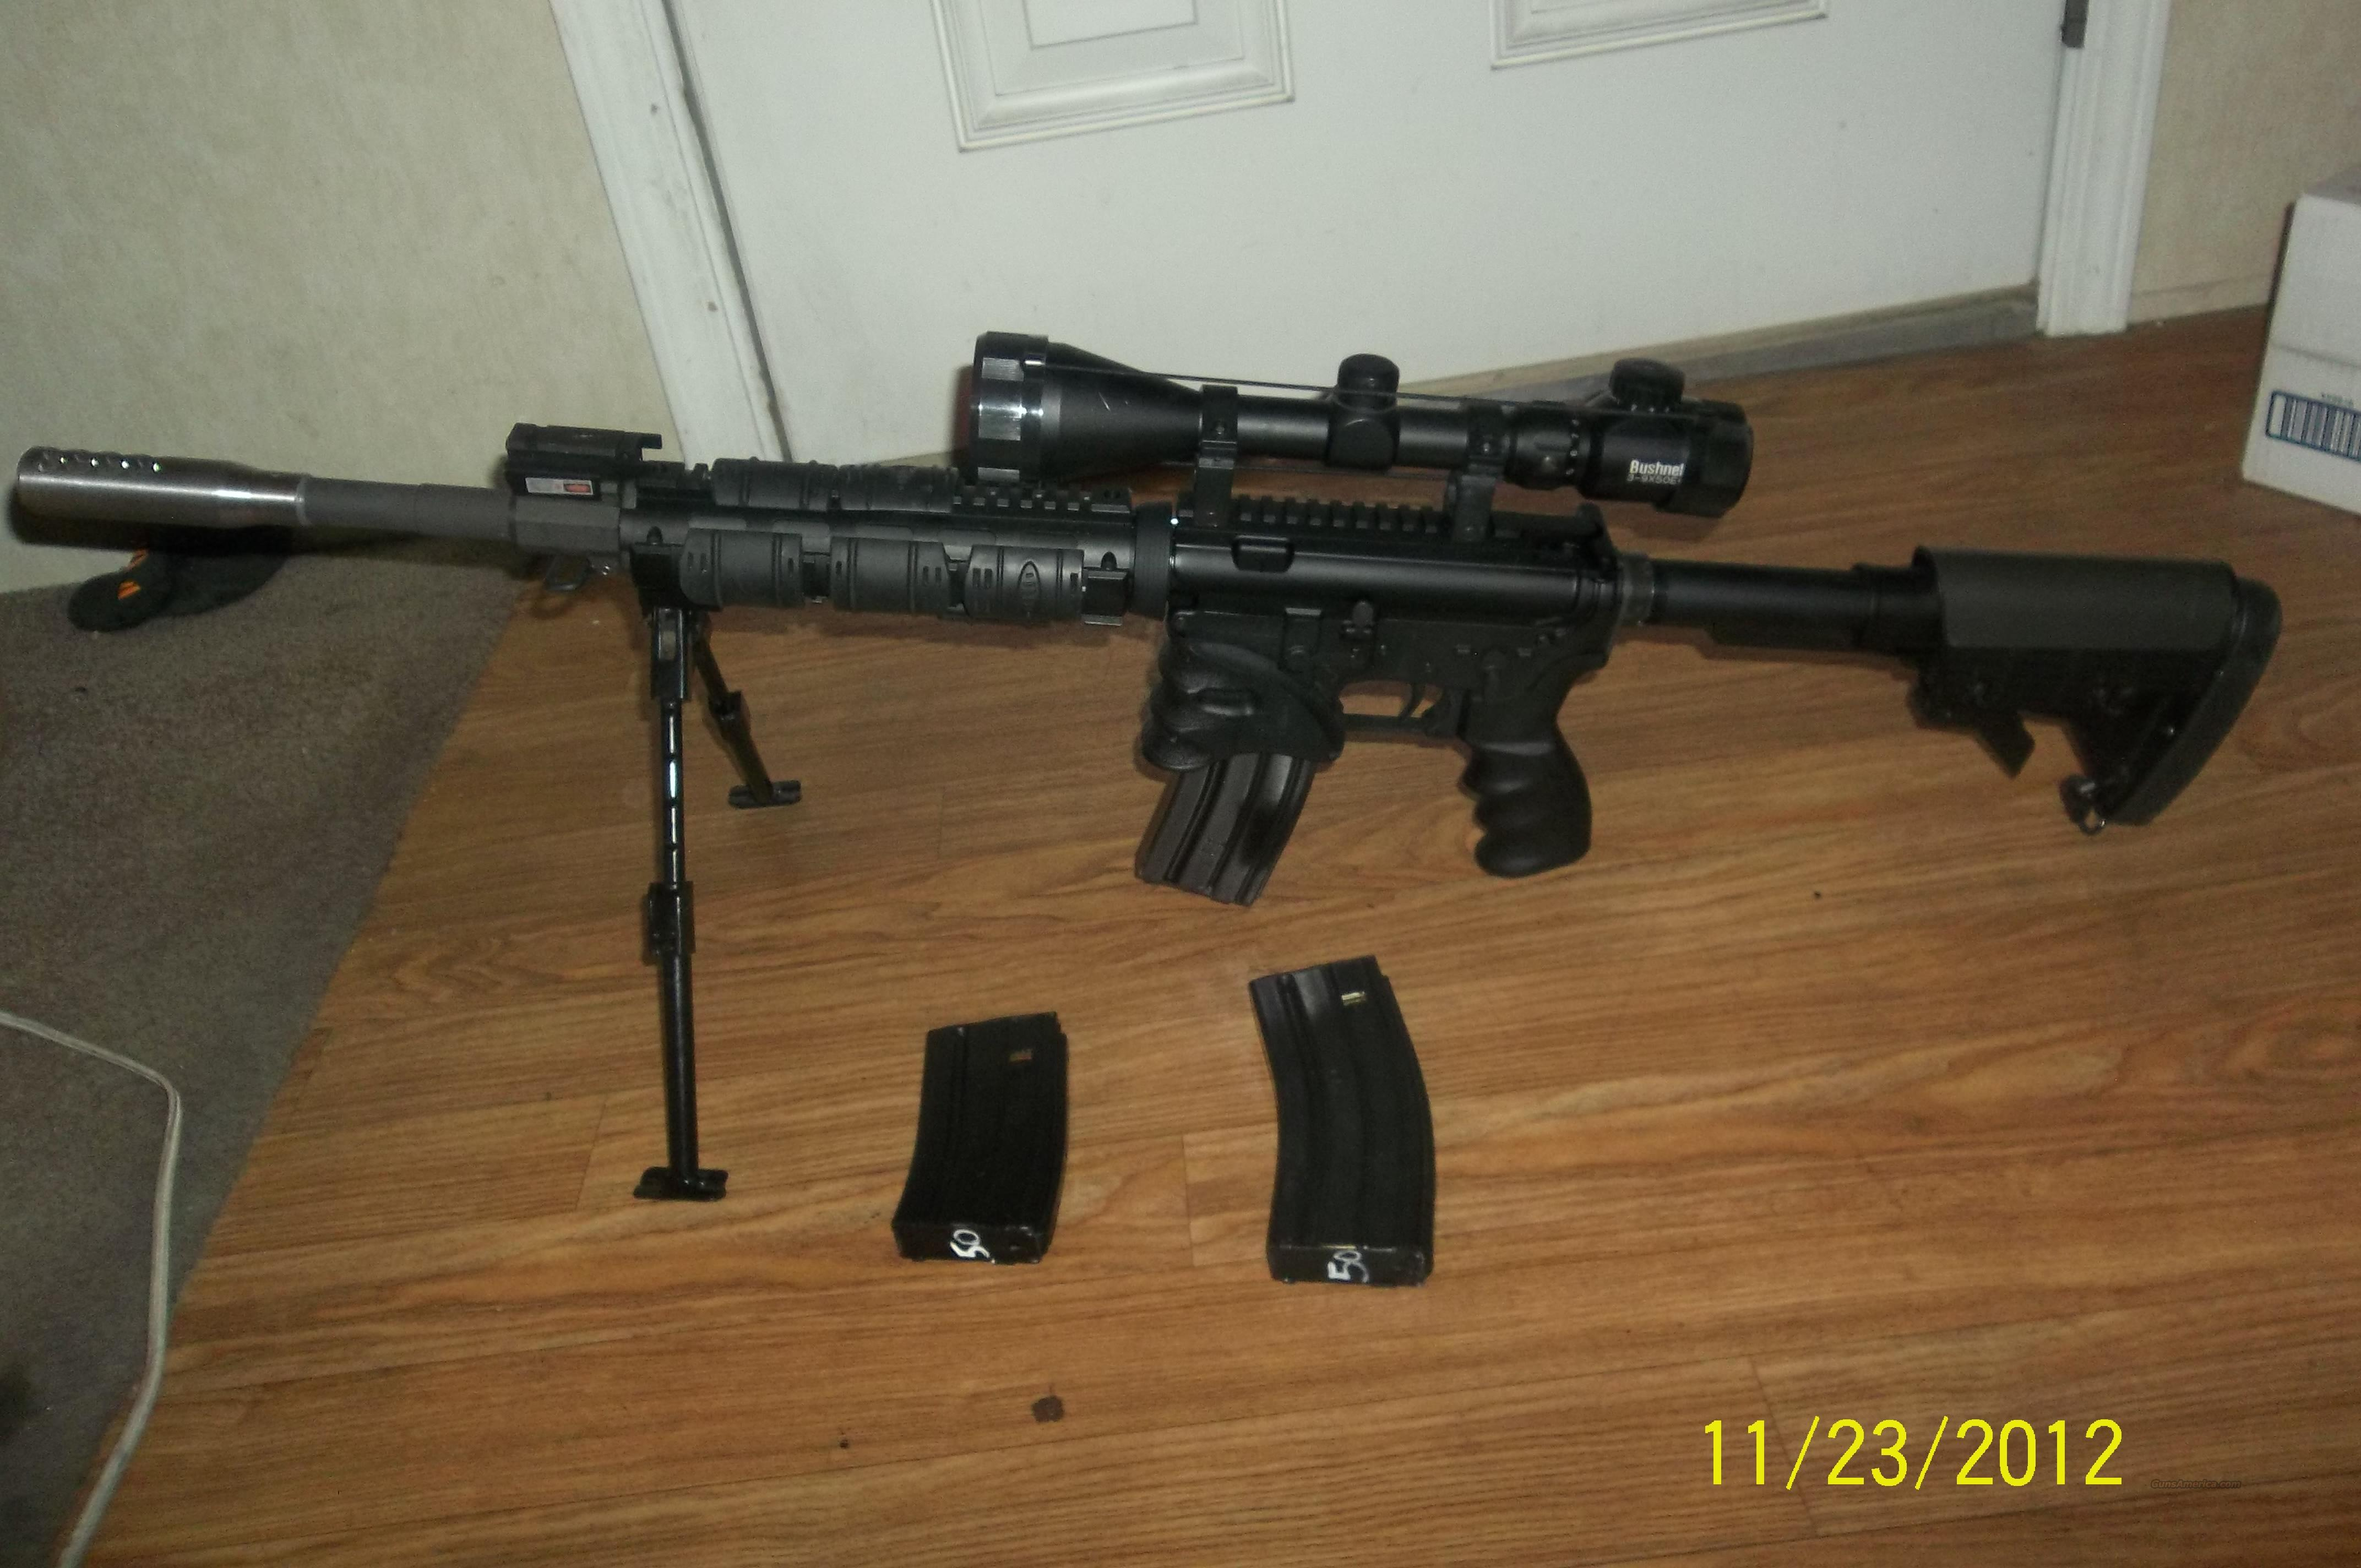 BEOWULF 50 Cal  Guns > Rifles > AR-15 Rifles - Small Manufacturers > Complete Rifle